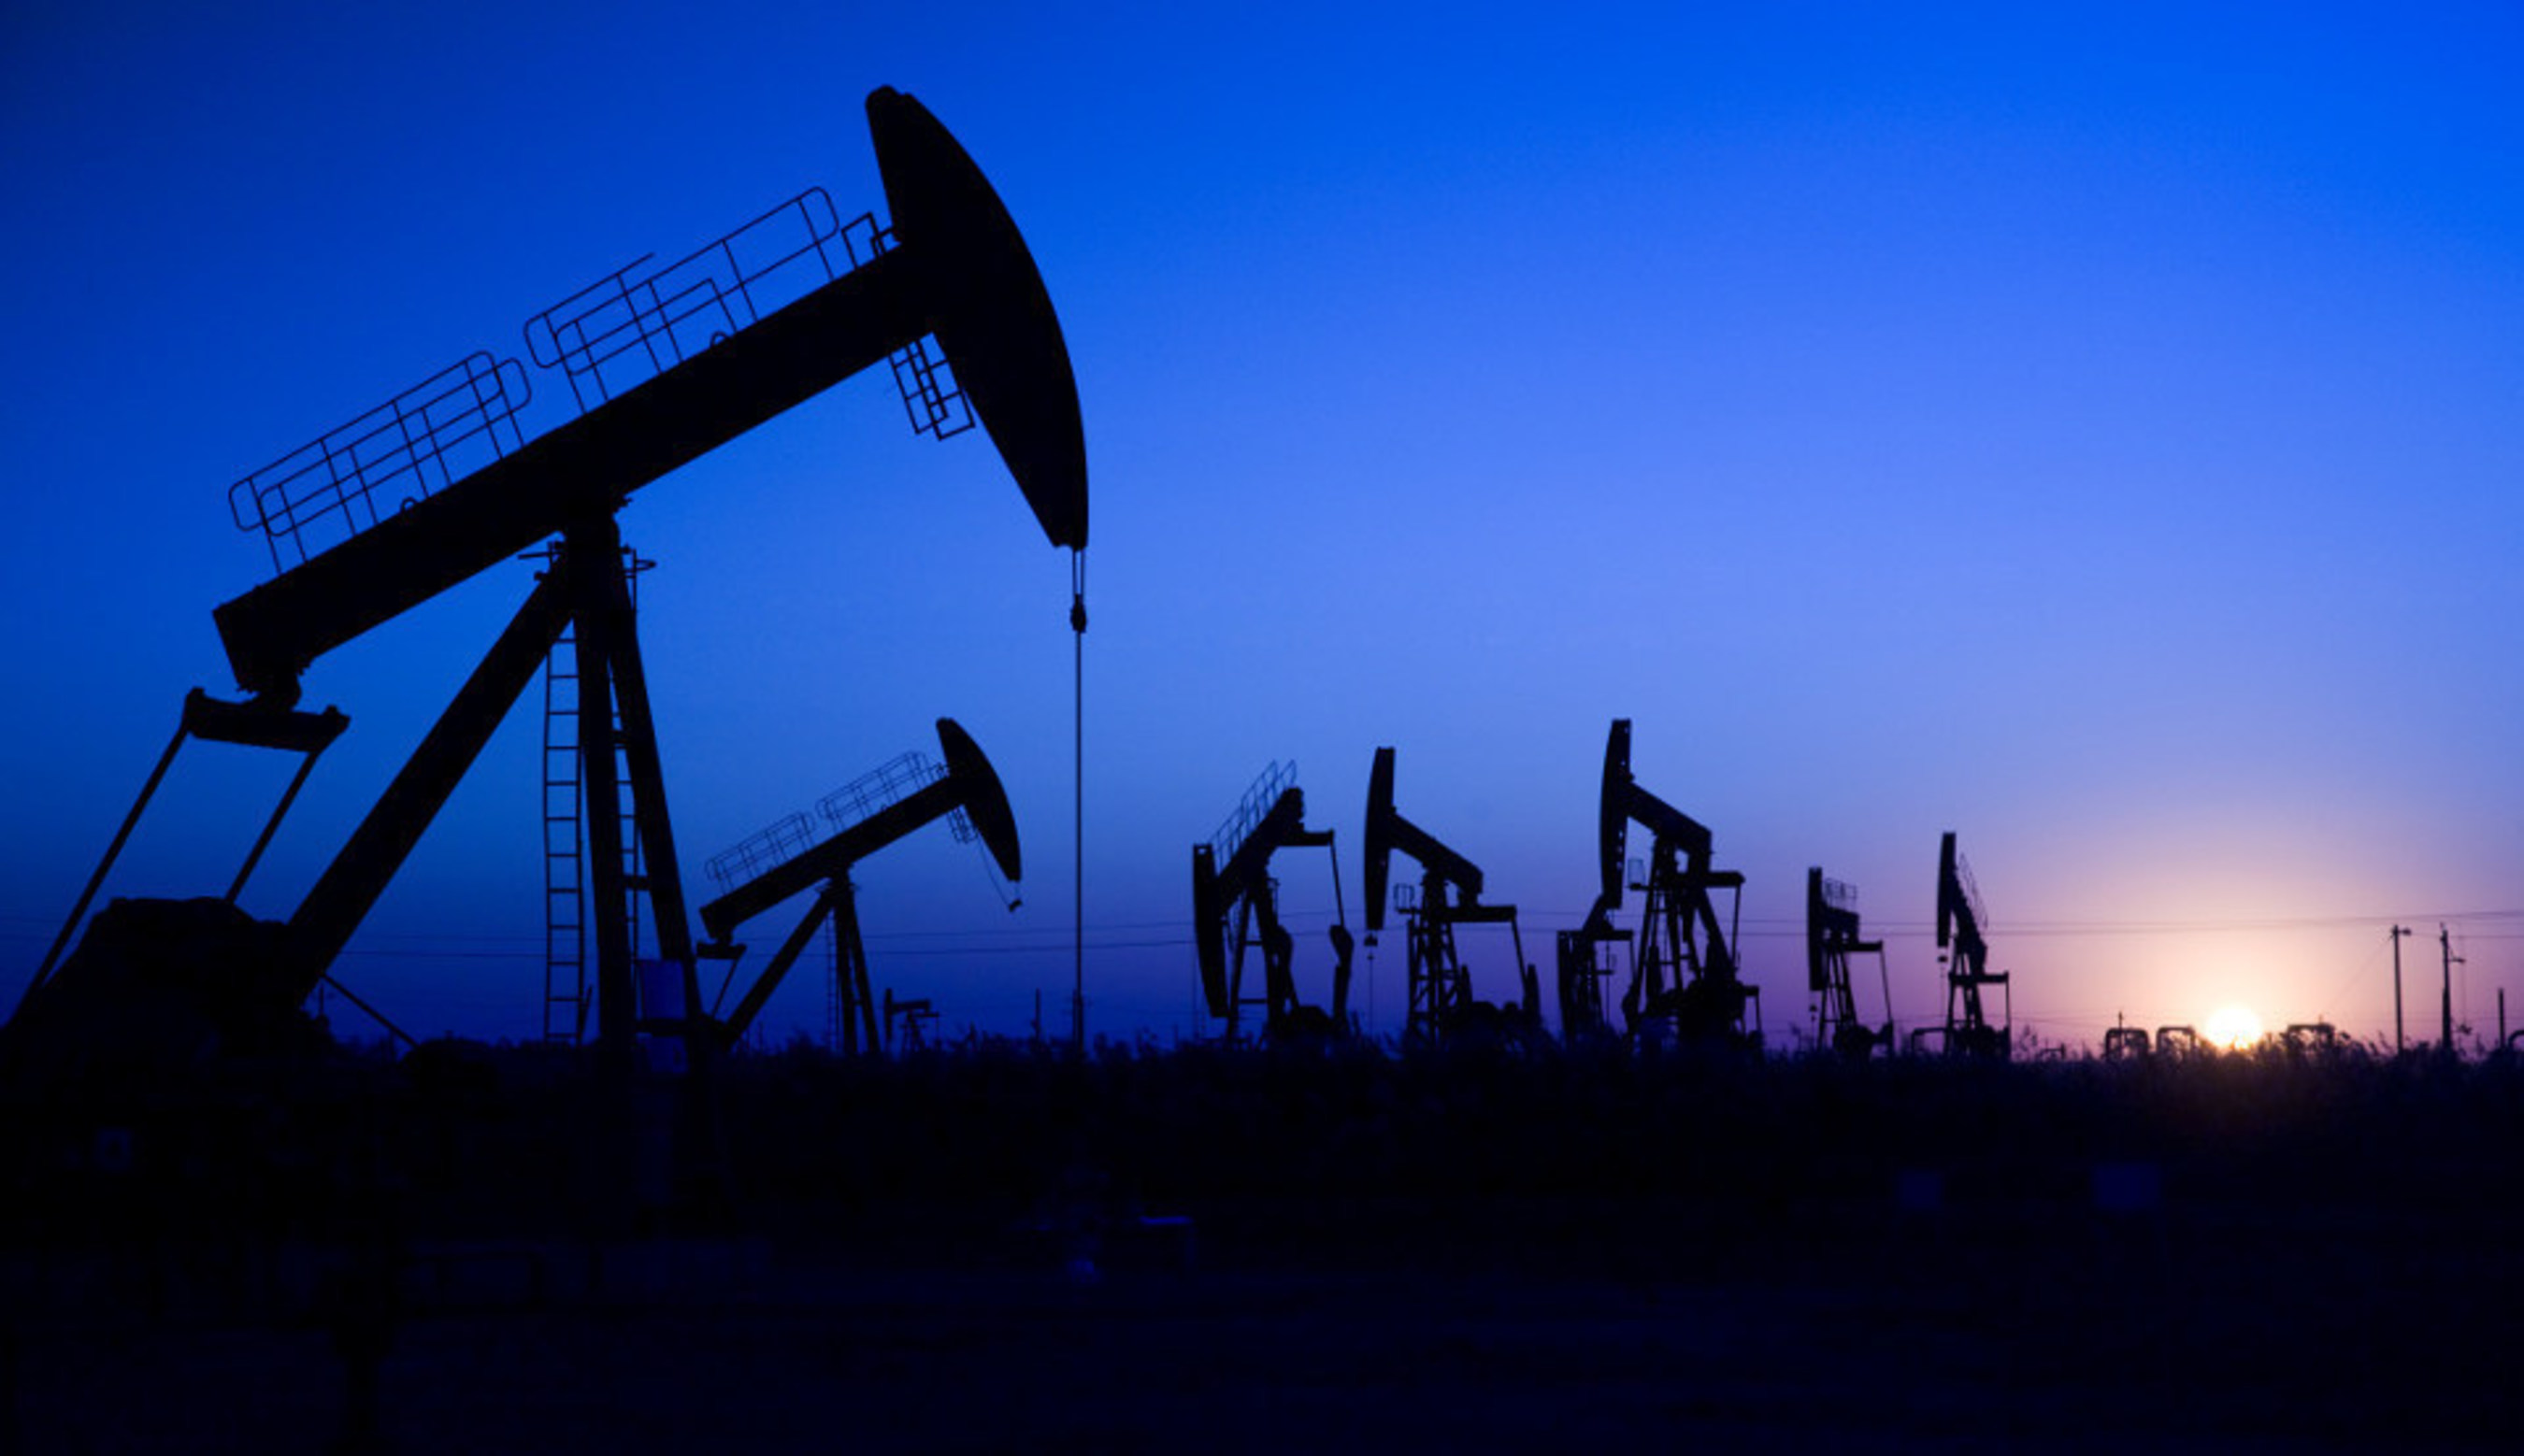 bp and the consolidation of the oil industry Bp and the consolidation of the oil industry--1998-2002 case solution,bp and the consolidation of the oil industry--1998-2002 case analysis, bp and the consolidation of the oil industry--1998-2002 case study solution, considers the economics of the oil and gas industry, with a focus on 1998 to 2001.